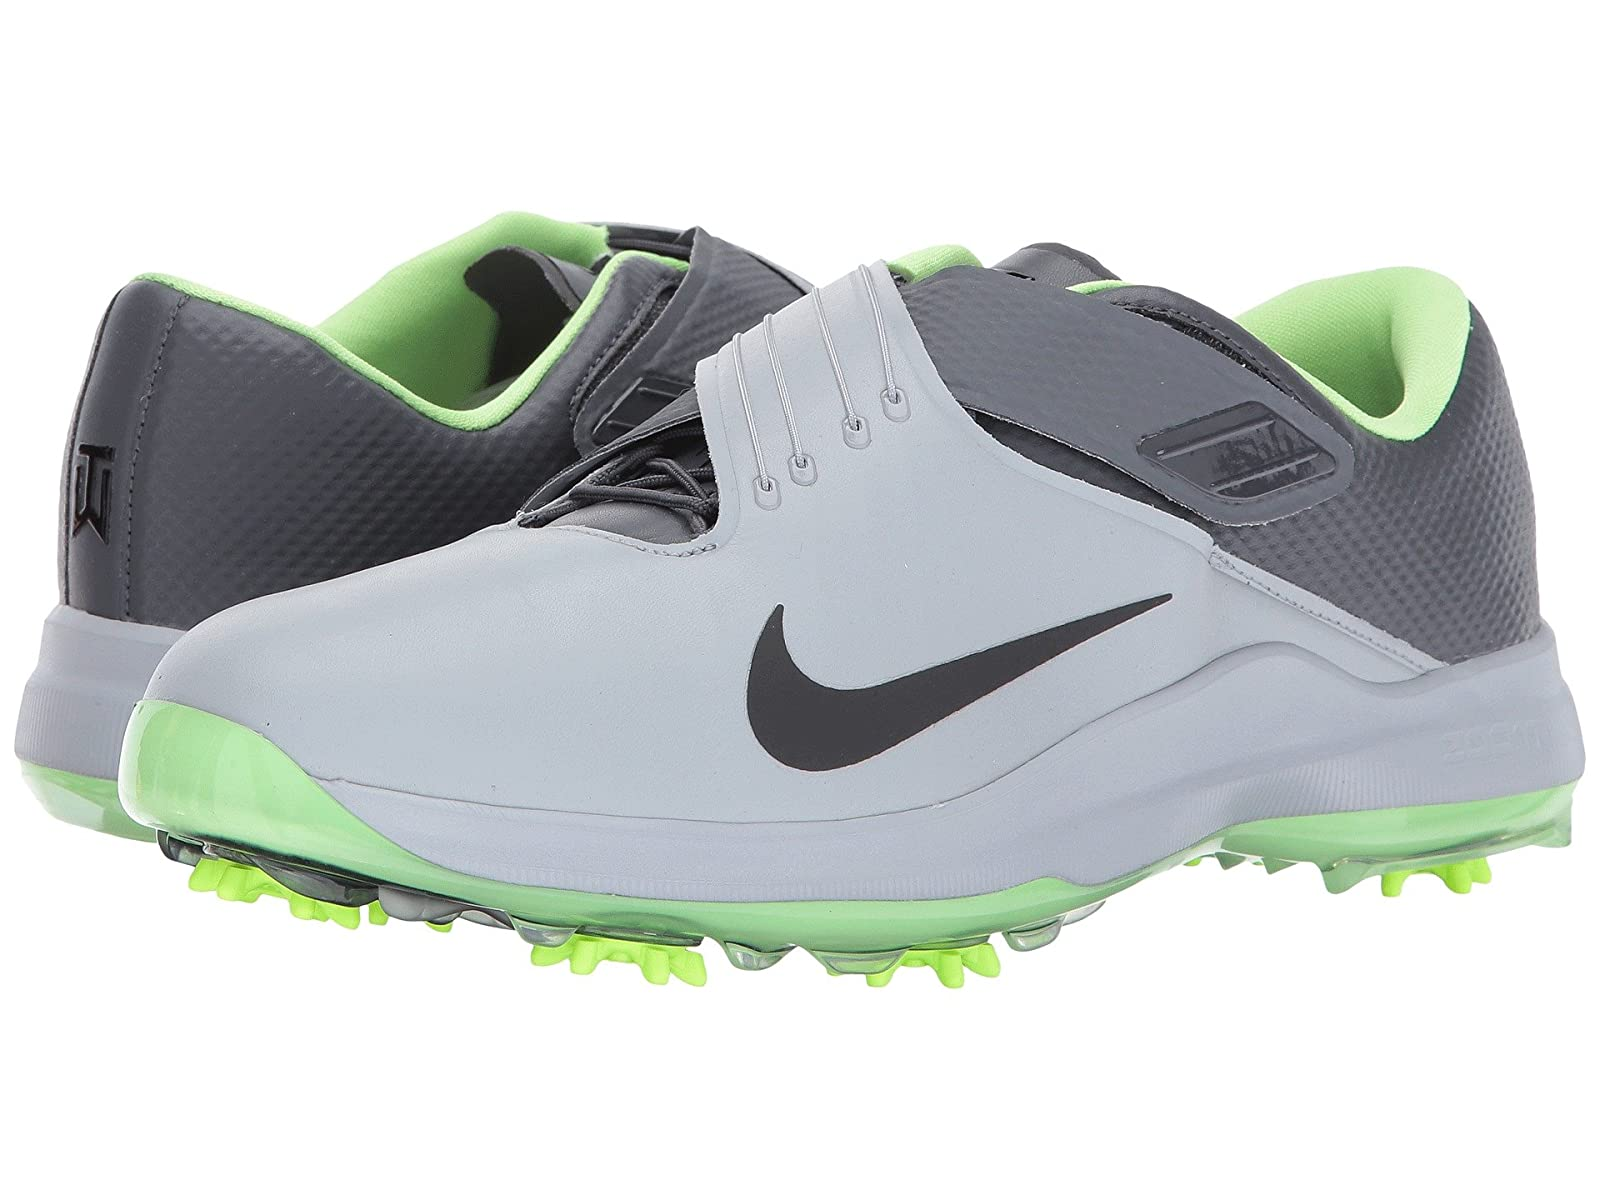 Nike Golf Tiger Woods TW '17Cheap and distinctive eye-catching shoes